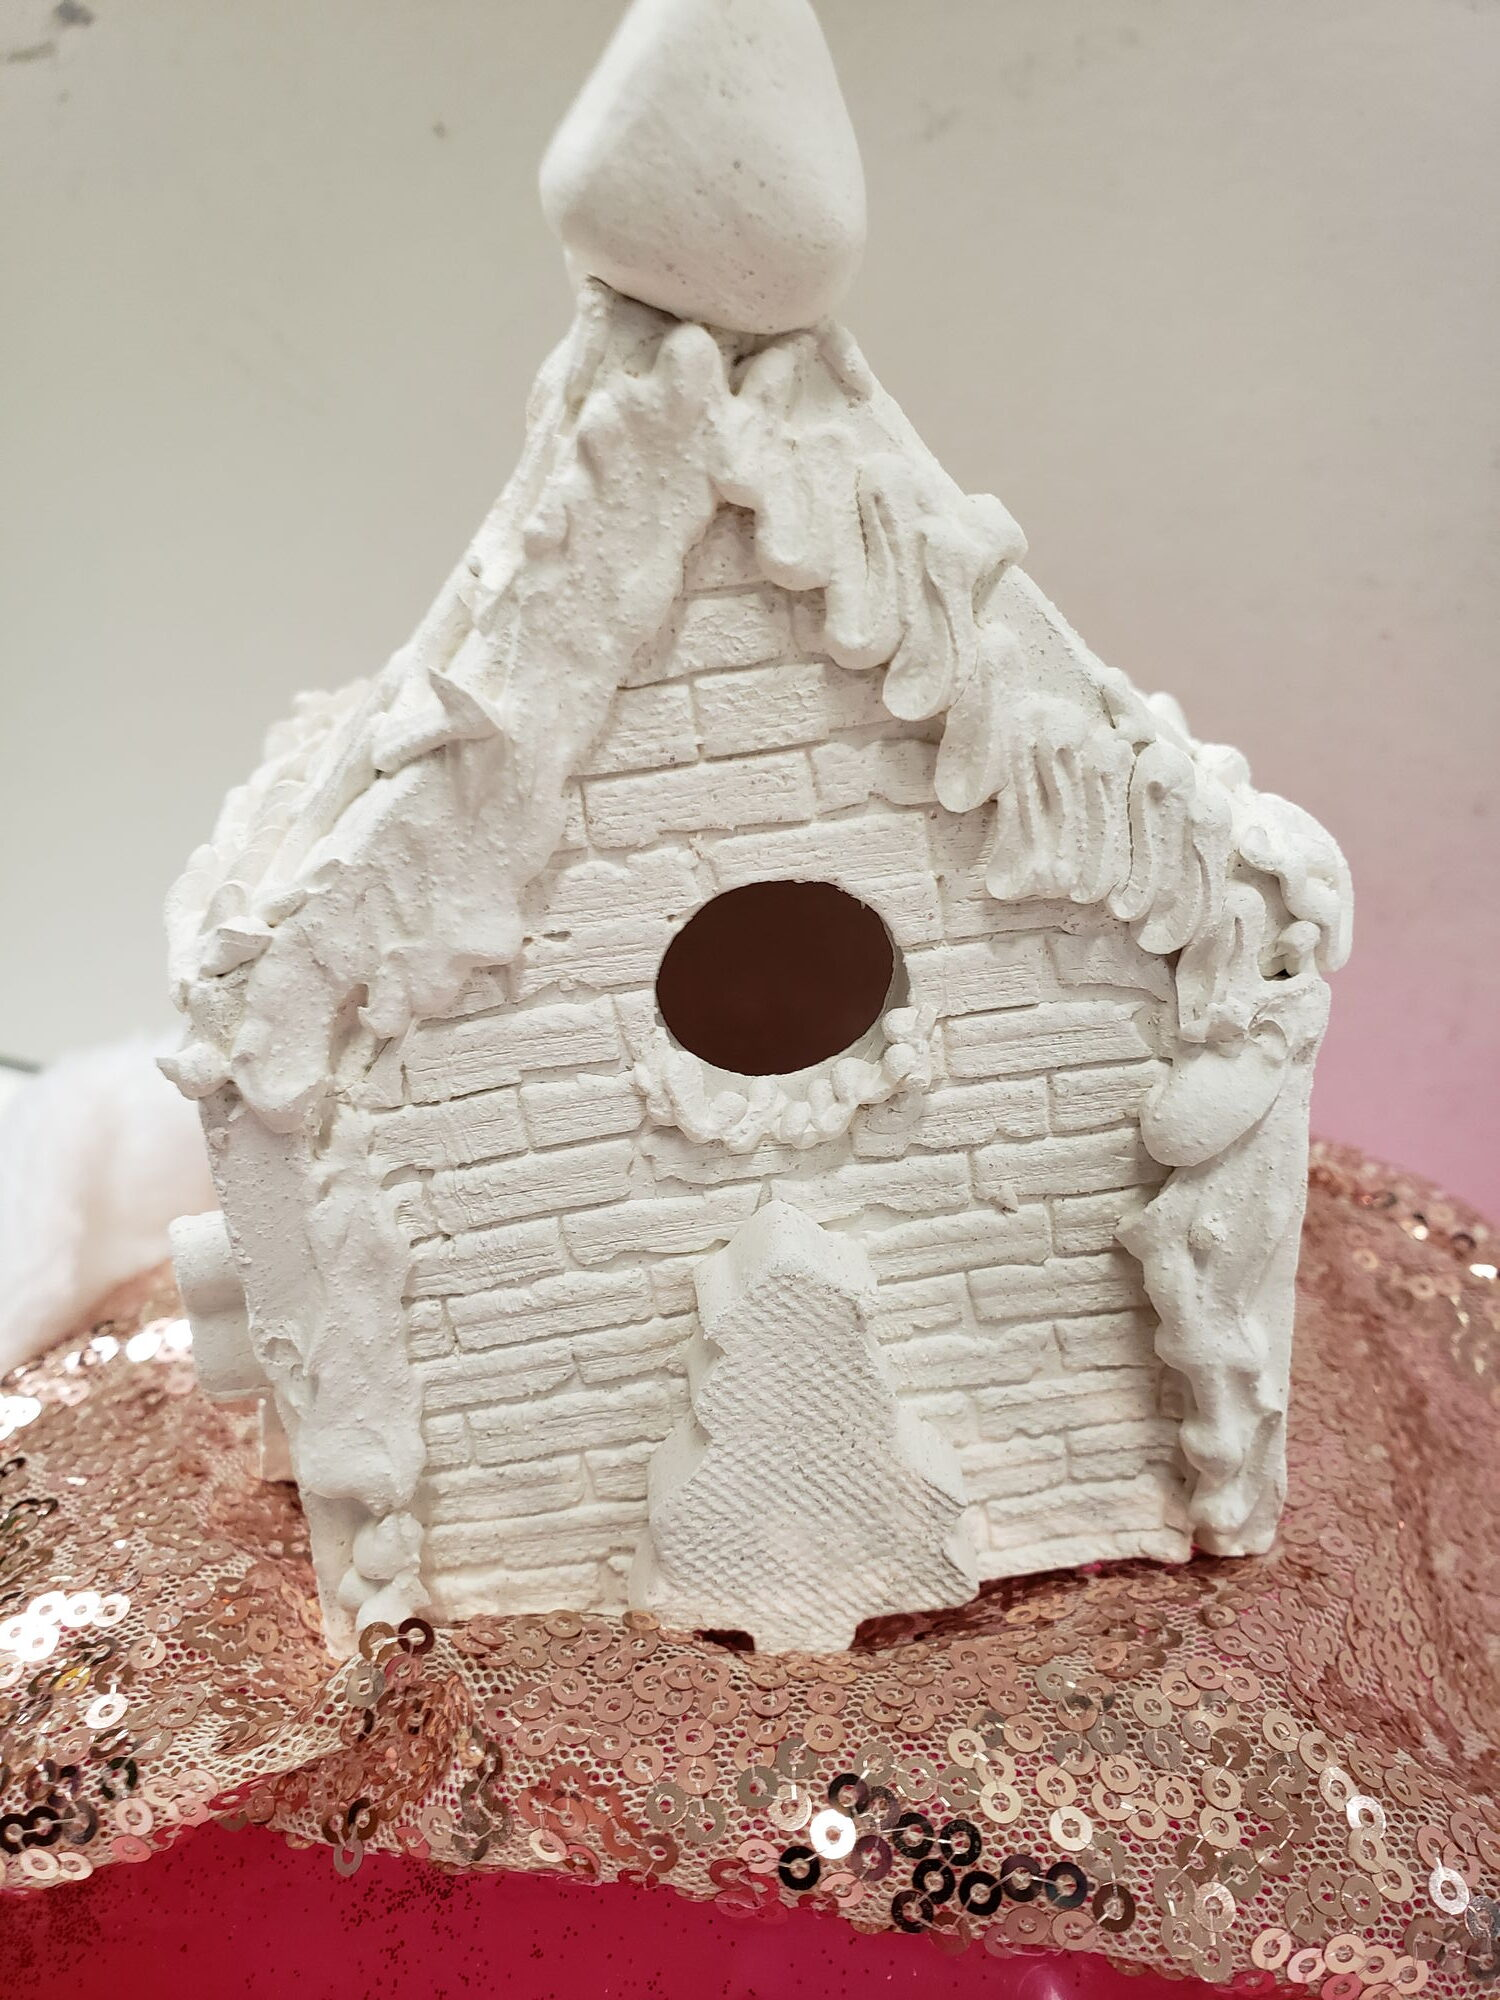 Pre-Made, Unpainted Ceramic Gingerbread House